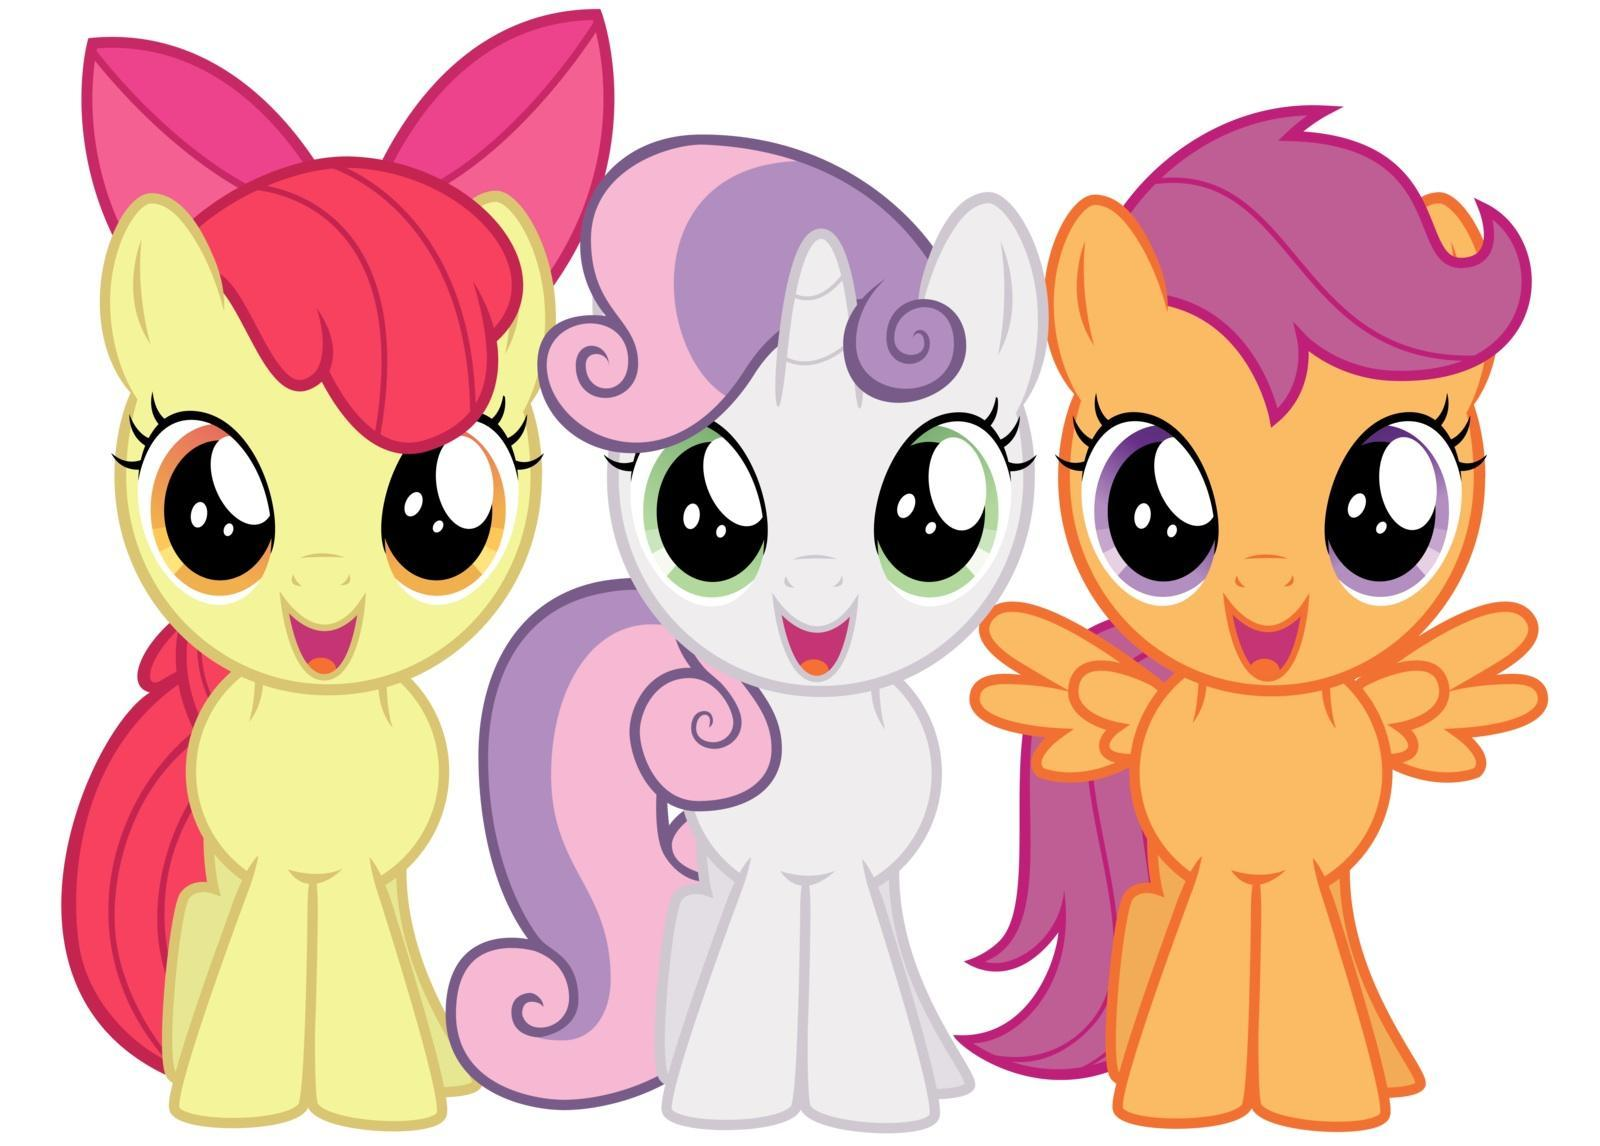 Who is Applejack's sister?